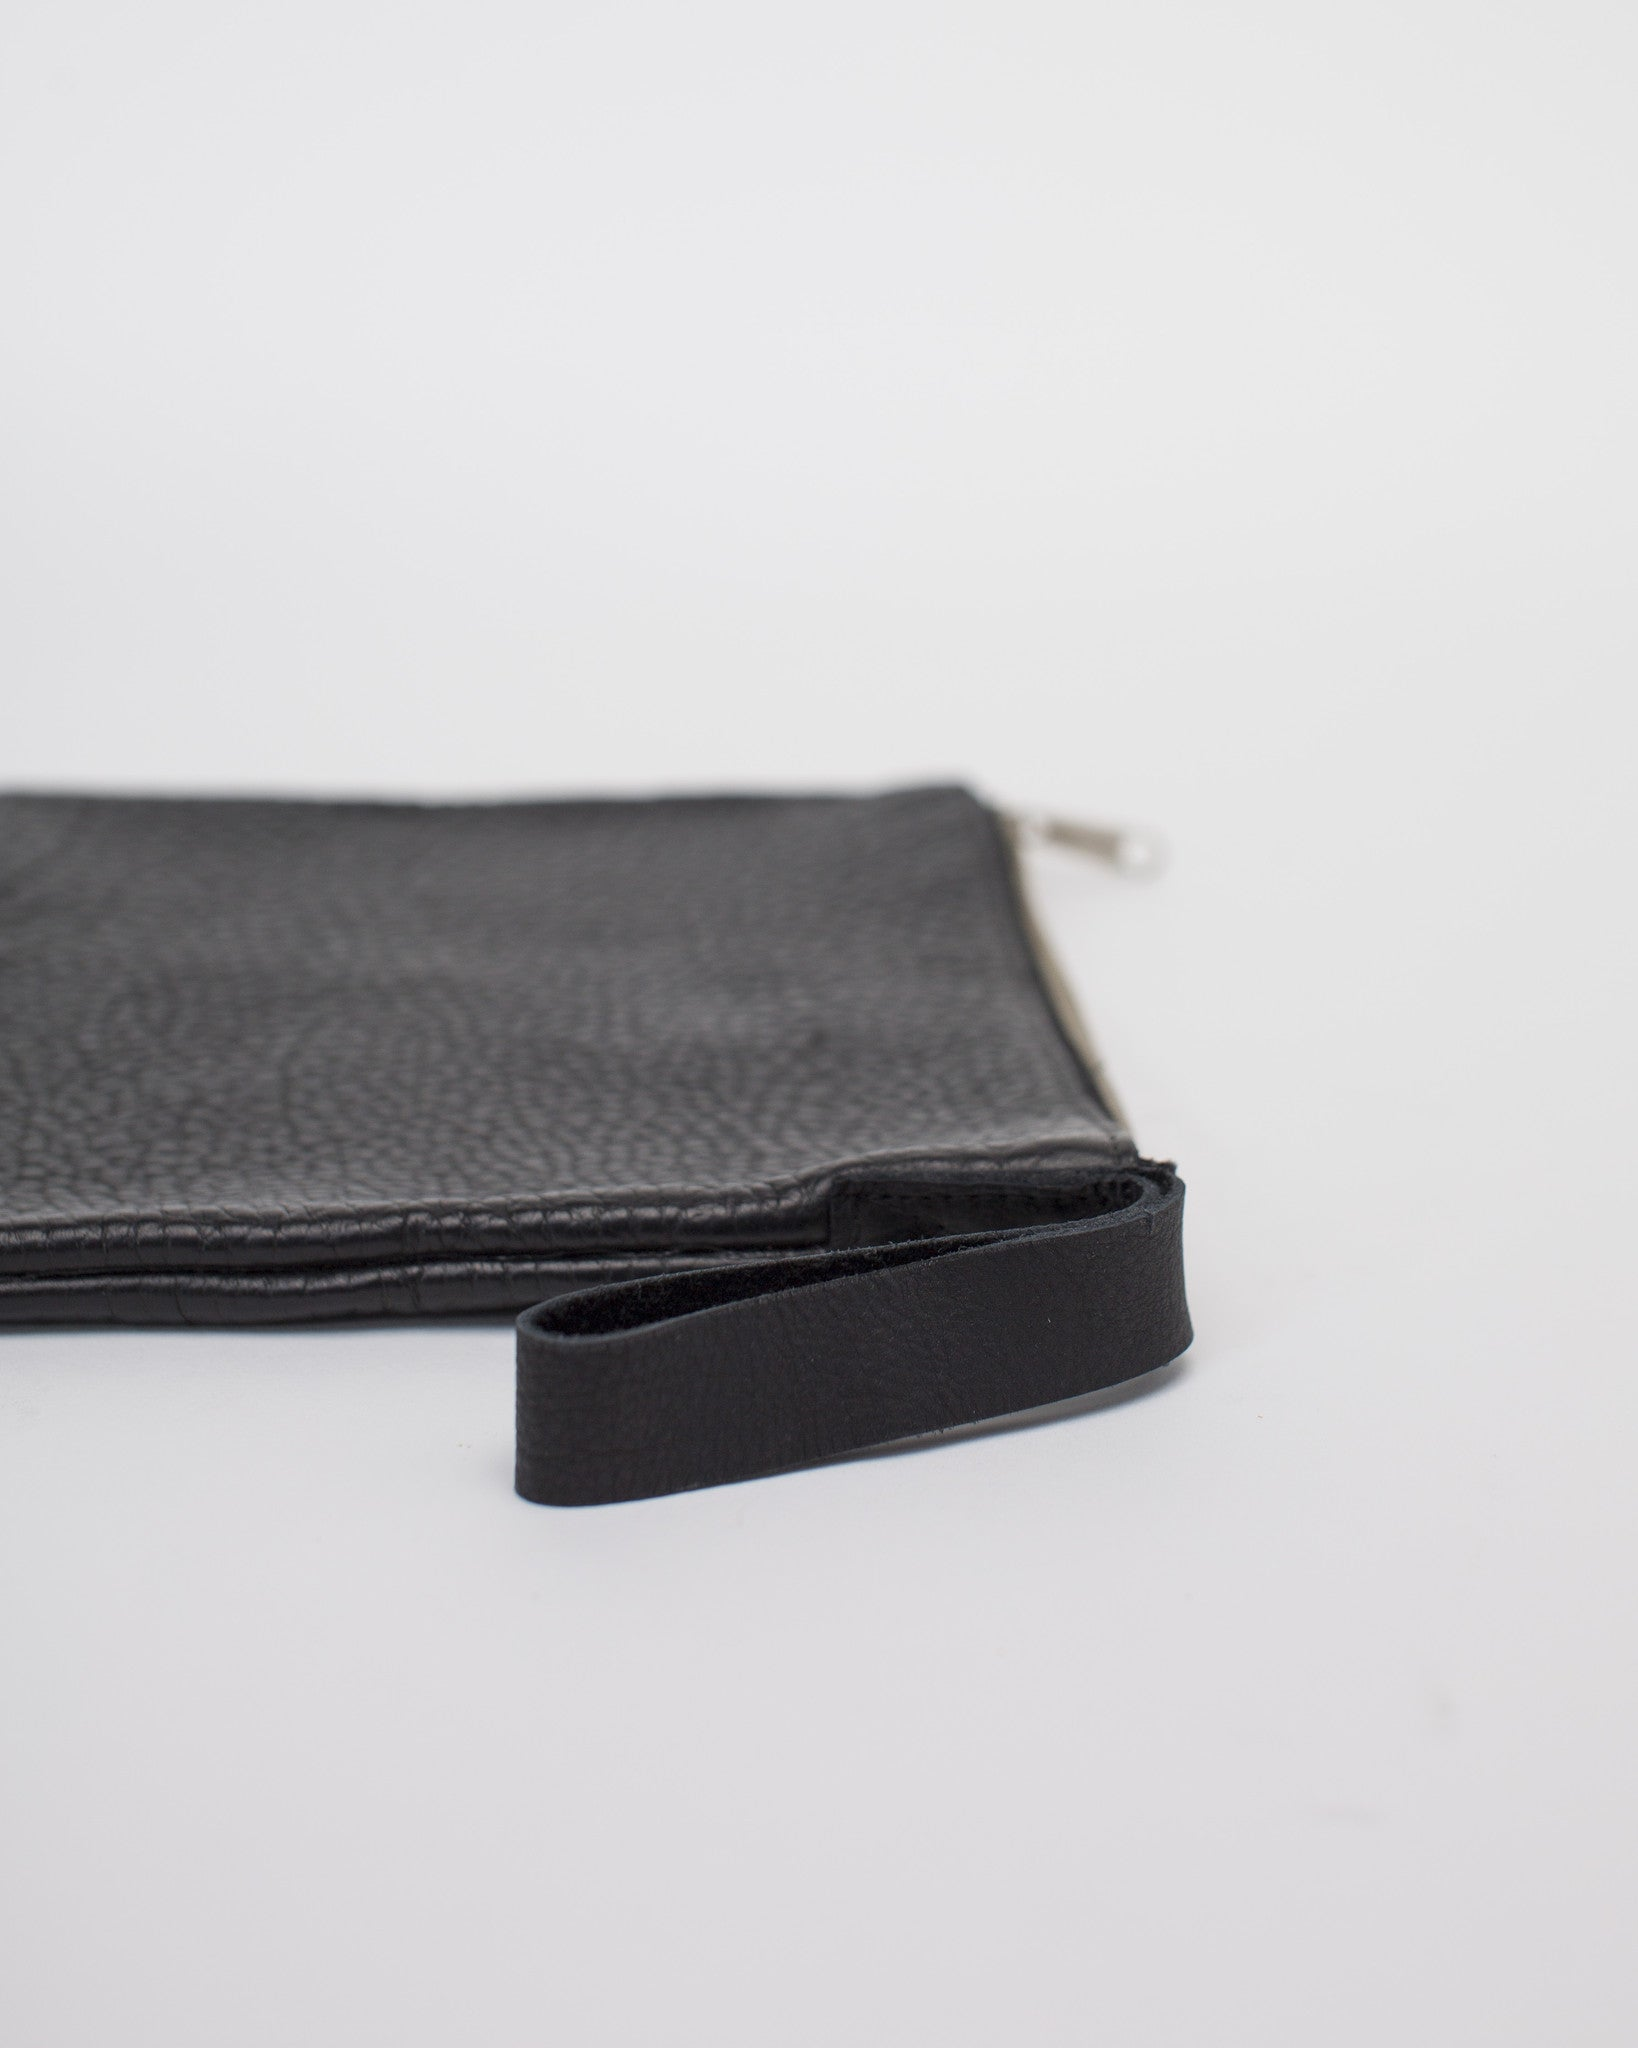 esby apparel leather bag pebbled bison clutch